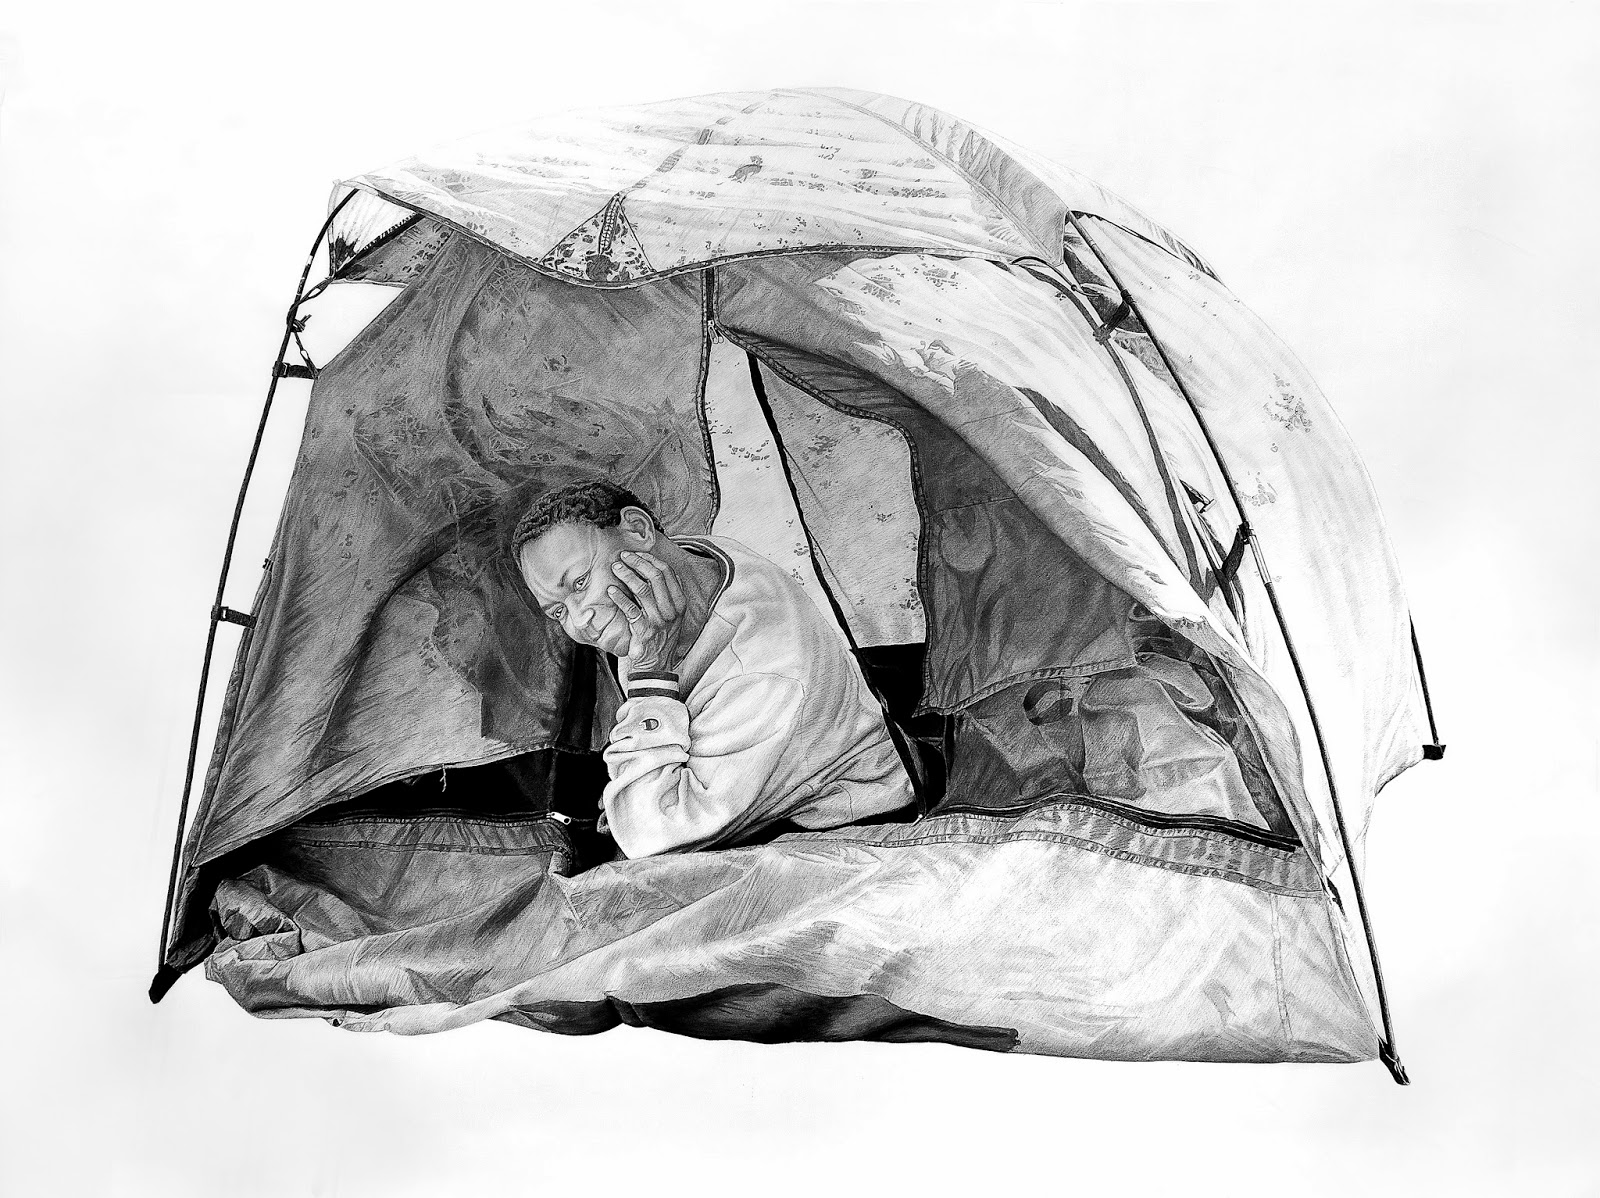 Sam in a Tent | 60x80in | Charcoal and Graphite on Paper | 2013